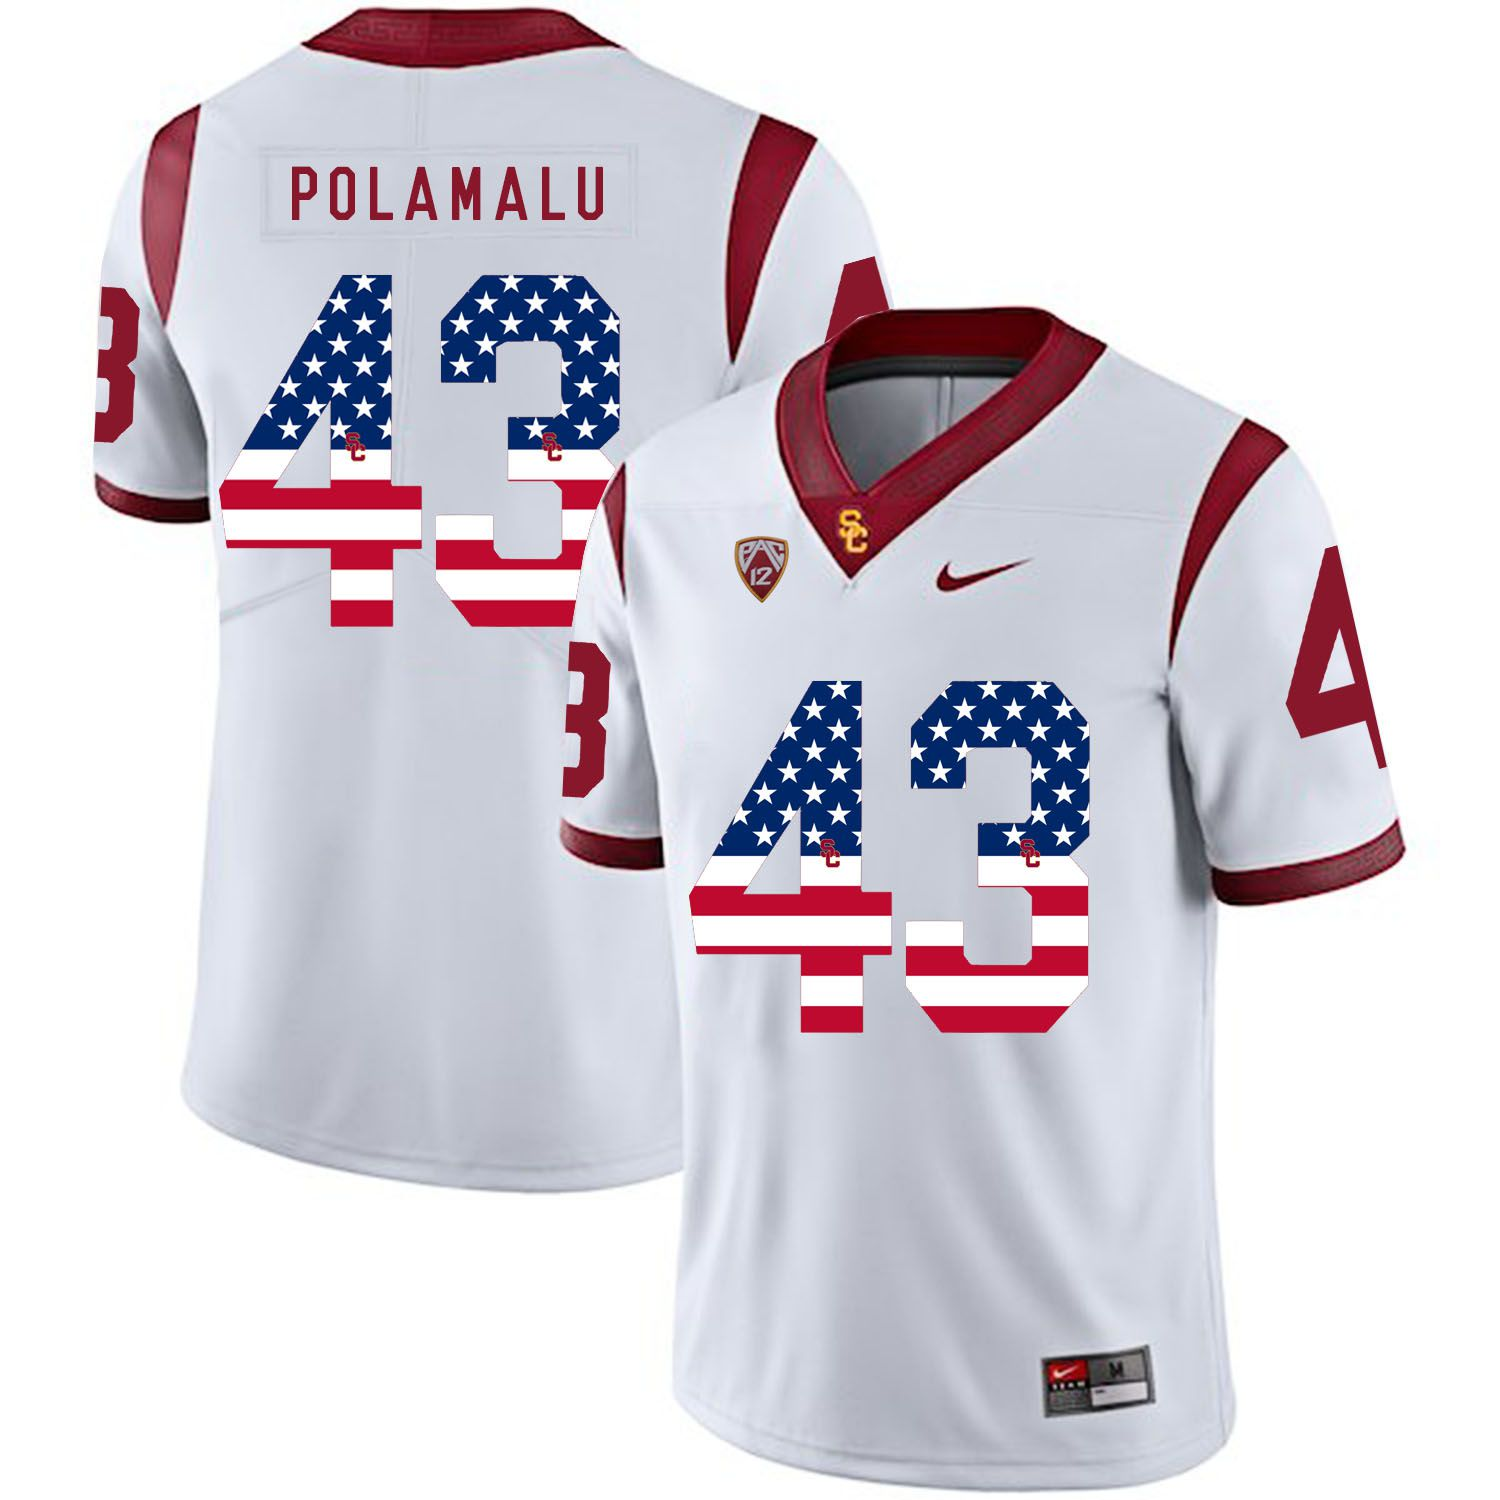 Men USC Trojans 43 Polamalu White Flag Customized NCAA Jerseys